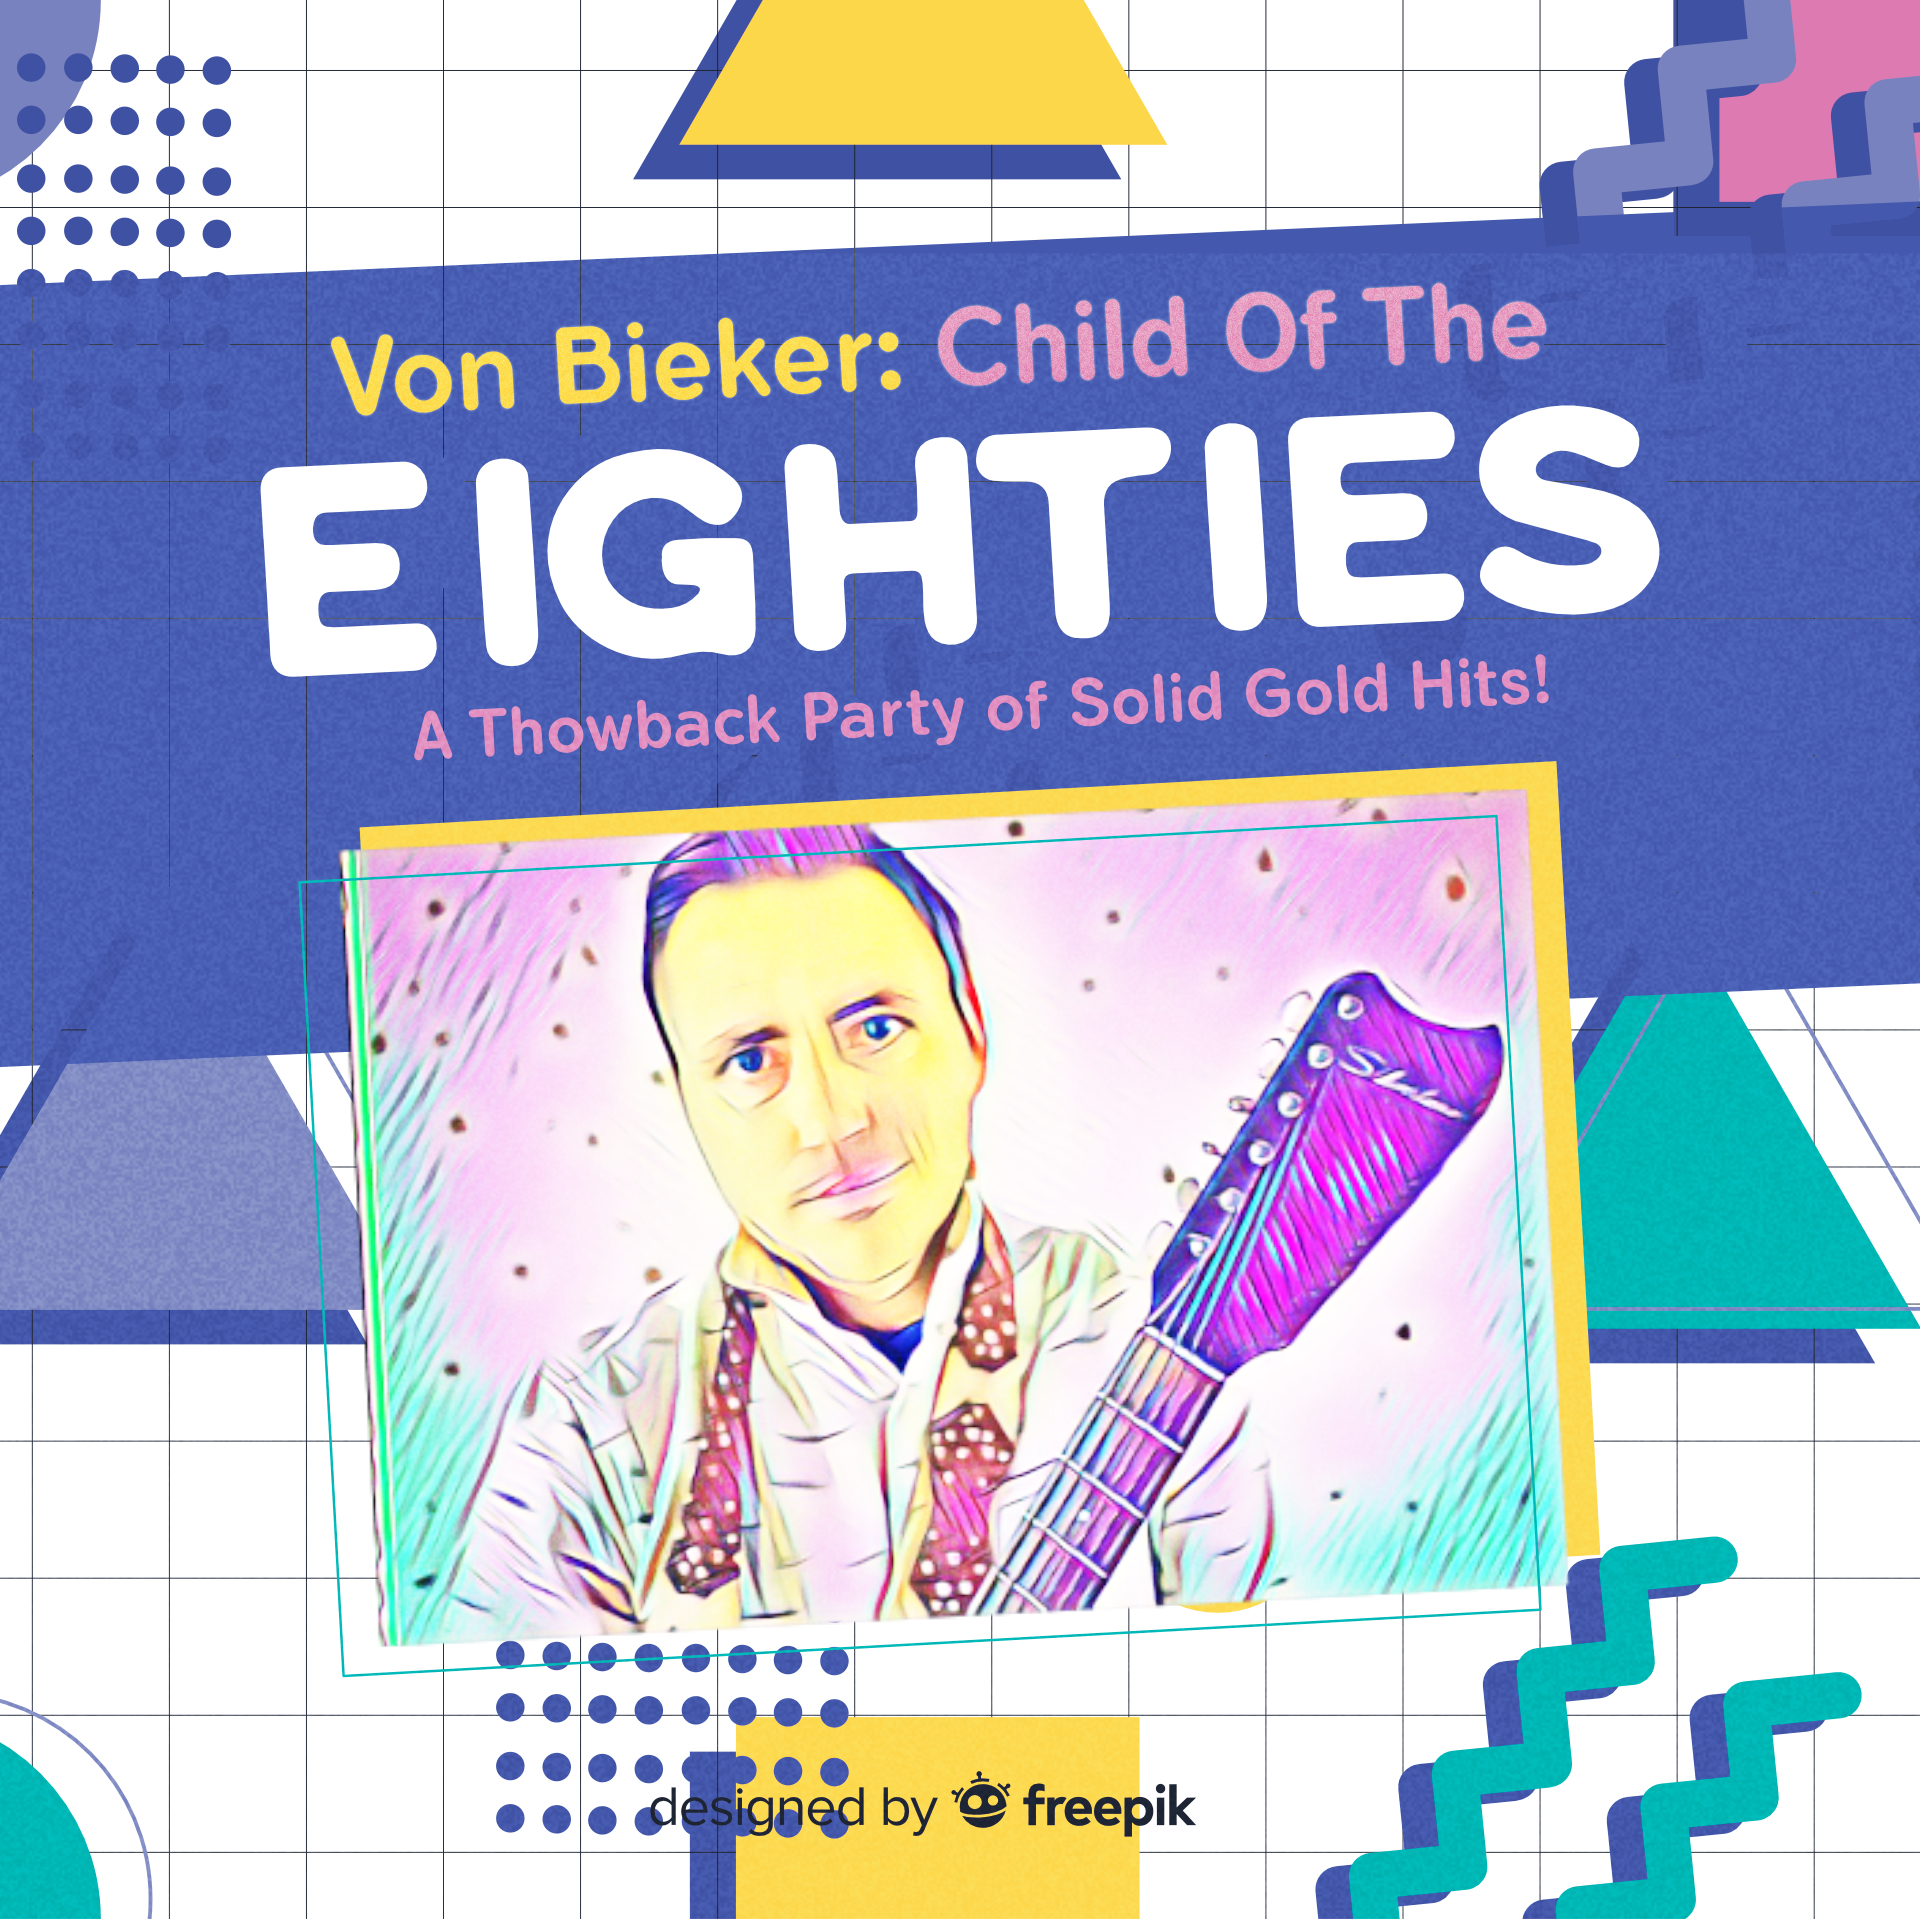 Von Bieker Child of the Eighties